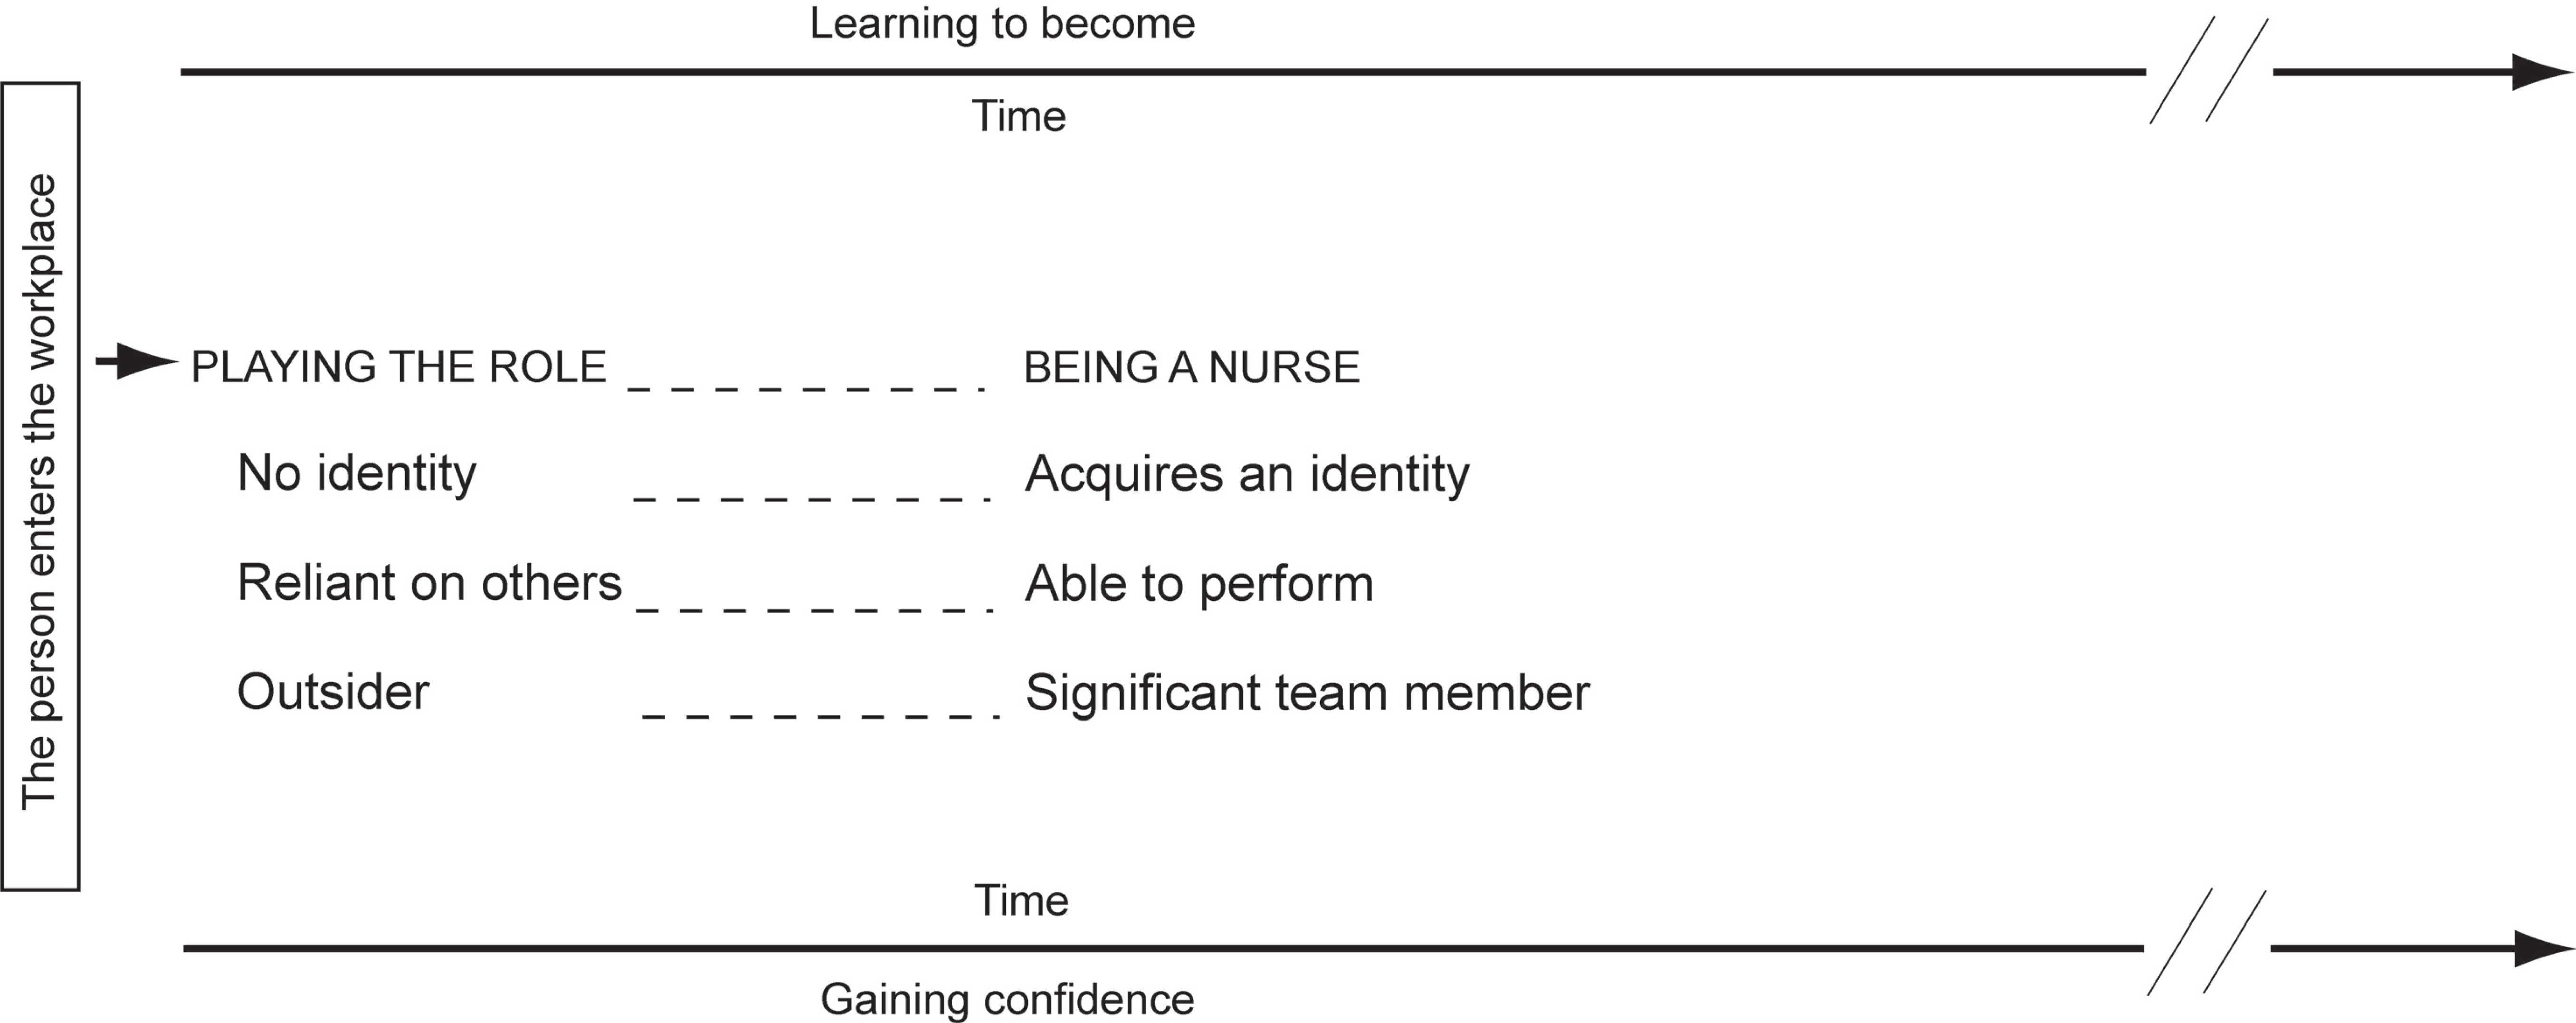 The time–confidence–learning trajectory of becoming a nurse